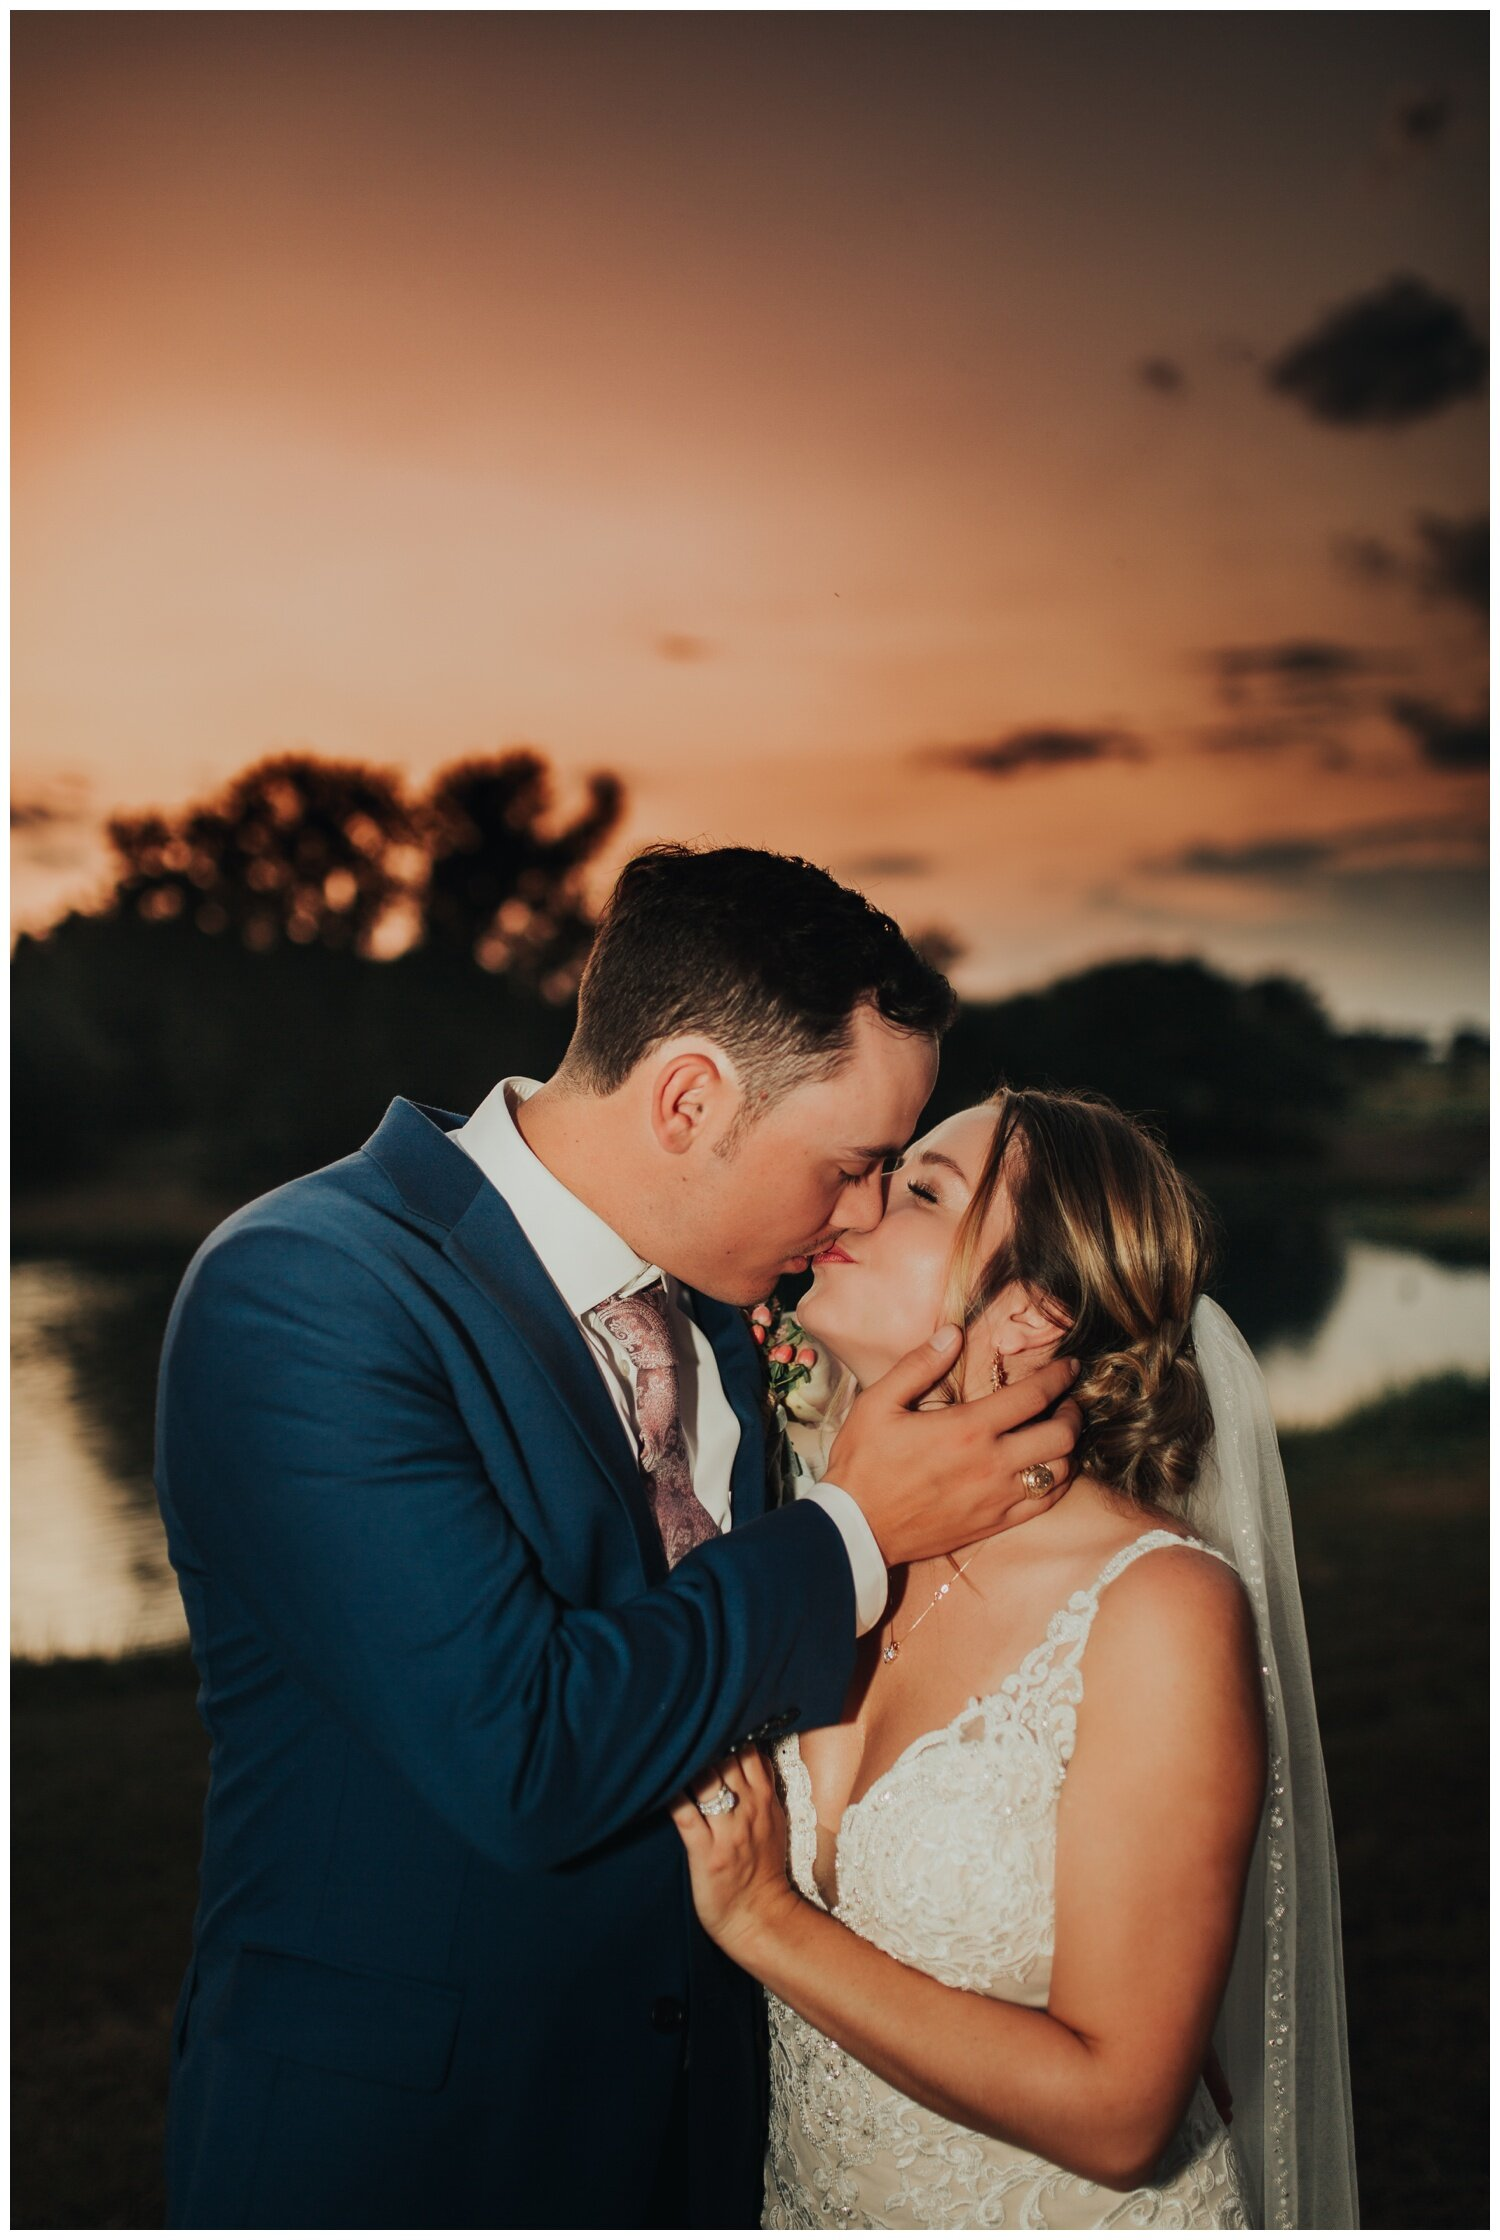 Modern Wedding at Ma Maison in Dripping Springs, Austin, Texas (Joshua and Parisa – Austin Wedding Photographer)_0059.jpg